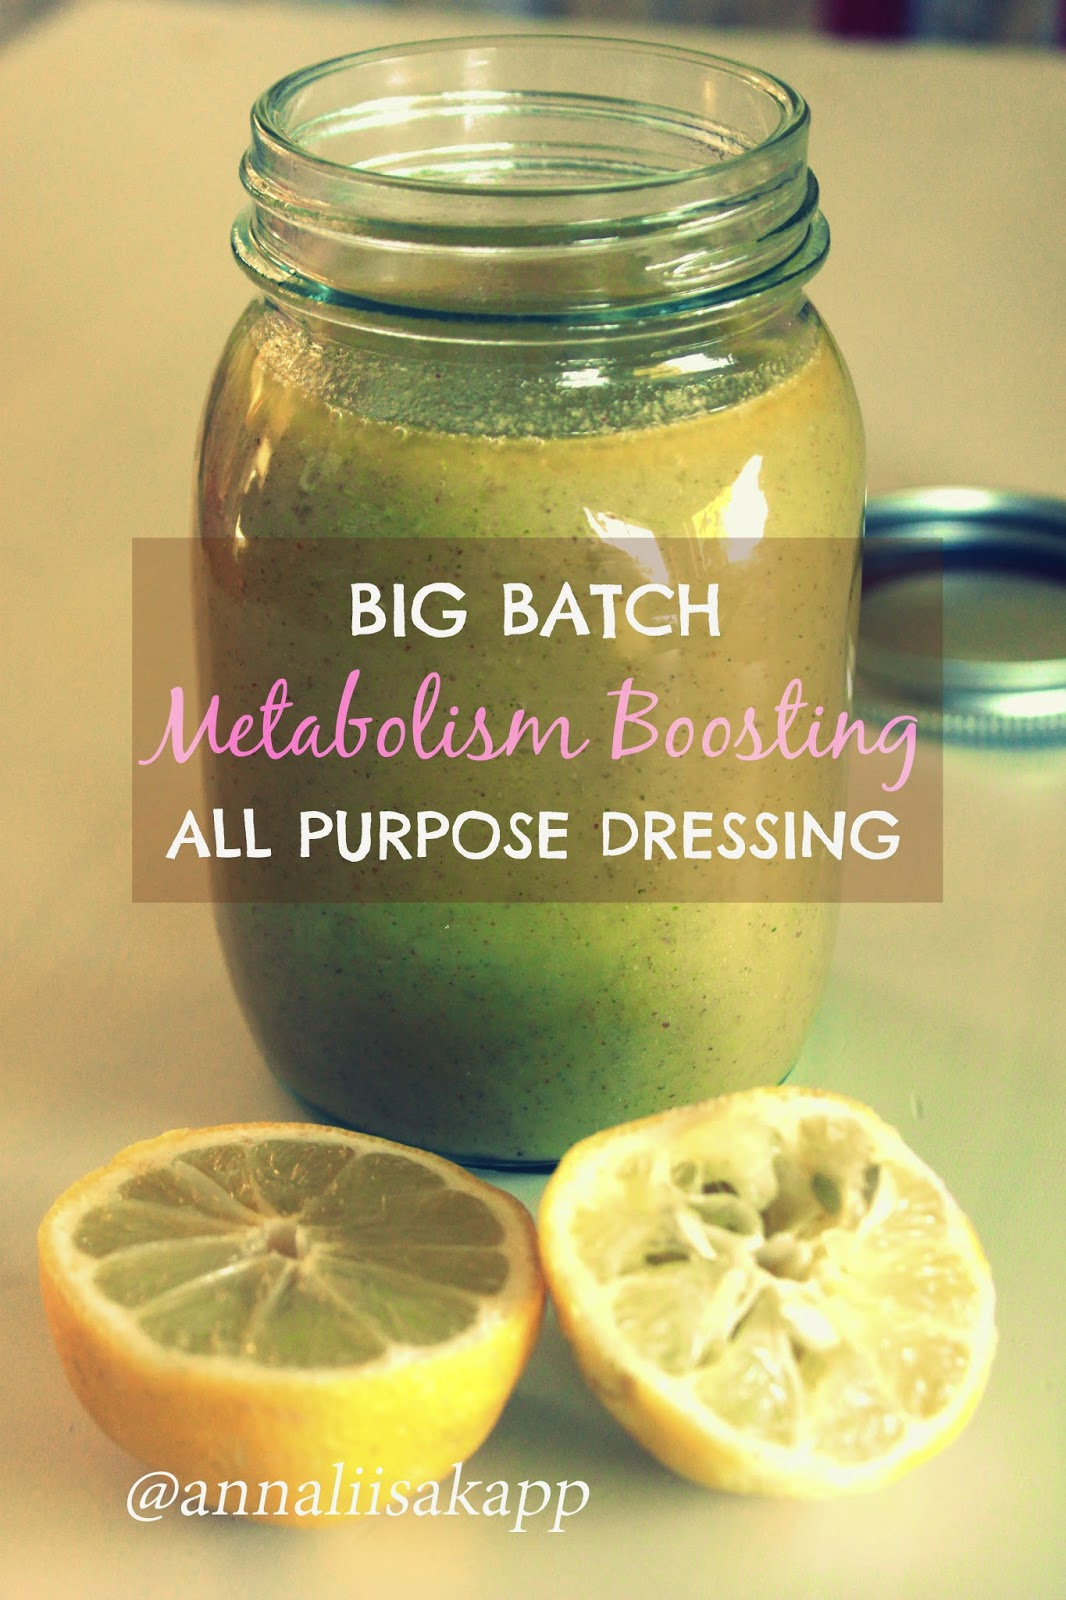 Big Batch Metabolism Boosting Dressing with Lemon, Mustard and Maple